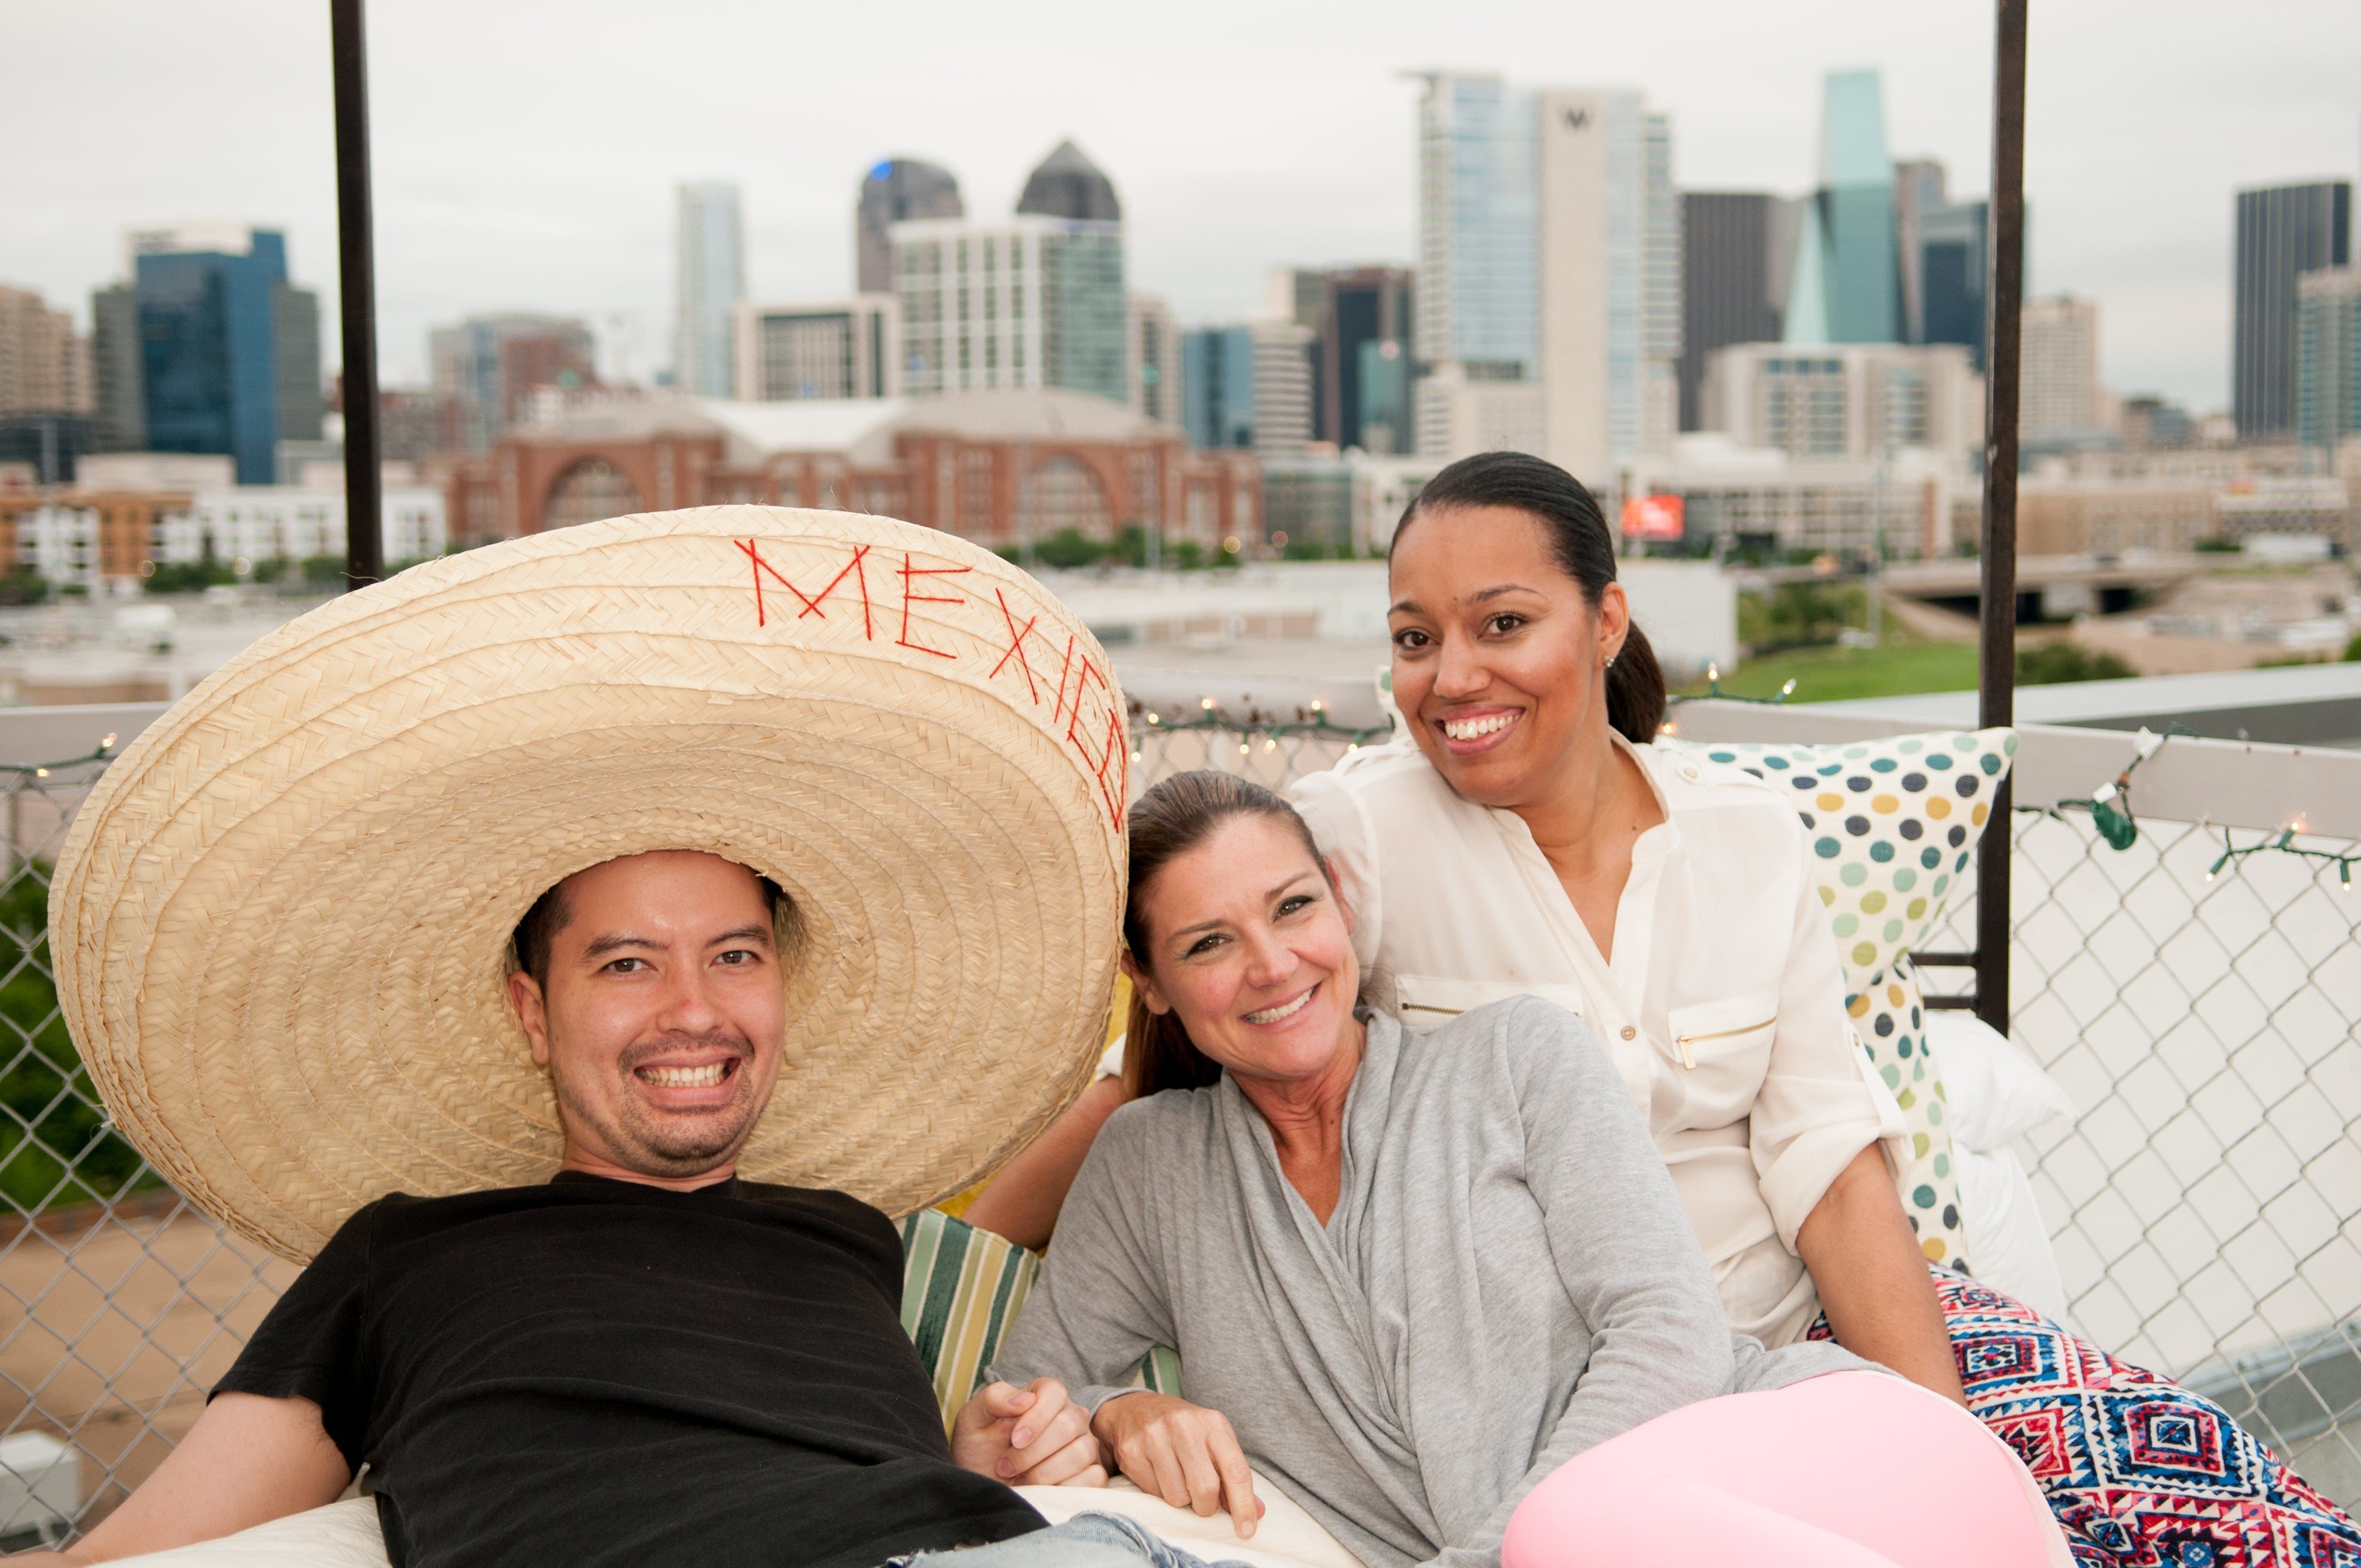 Guests lounge on the rooftop bed with a sombrero